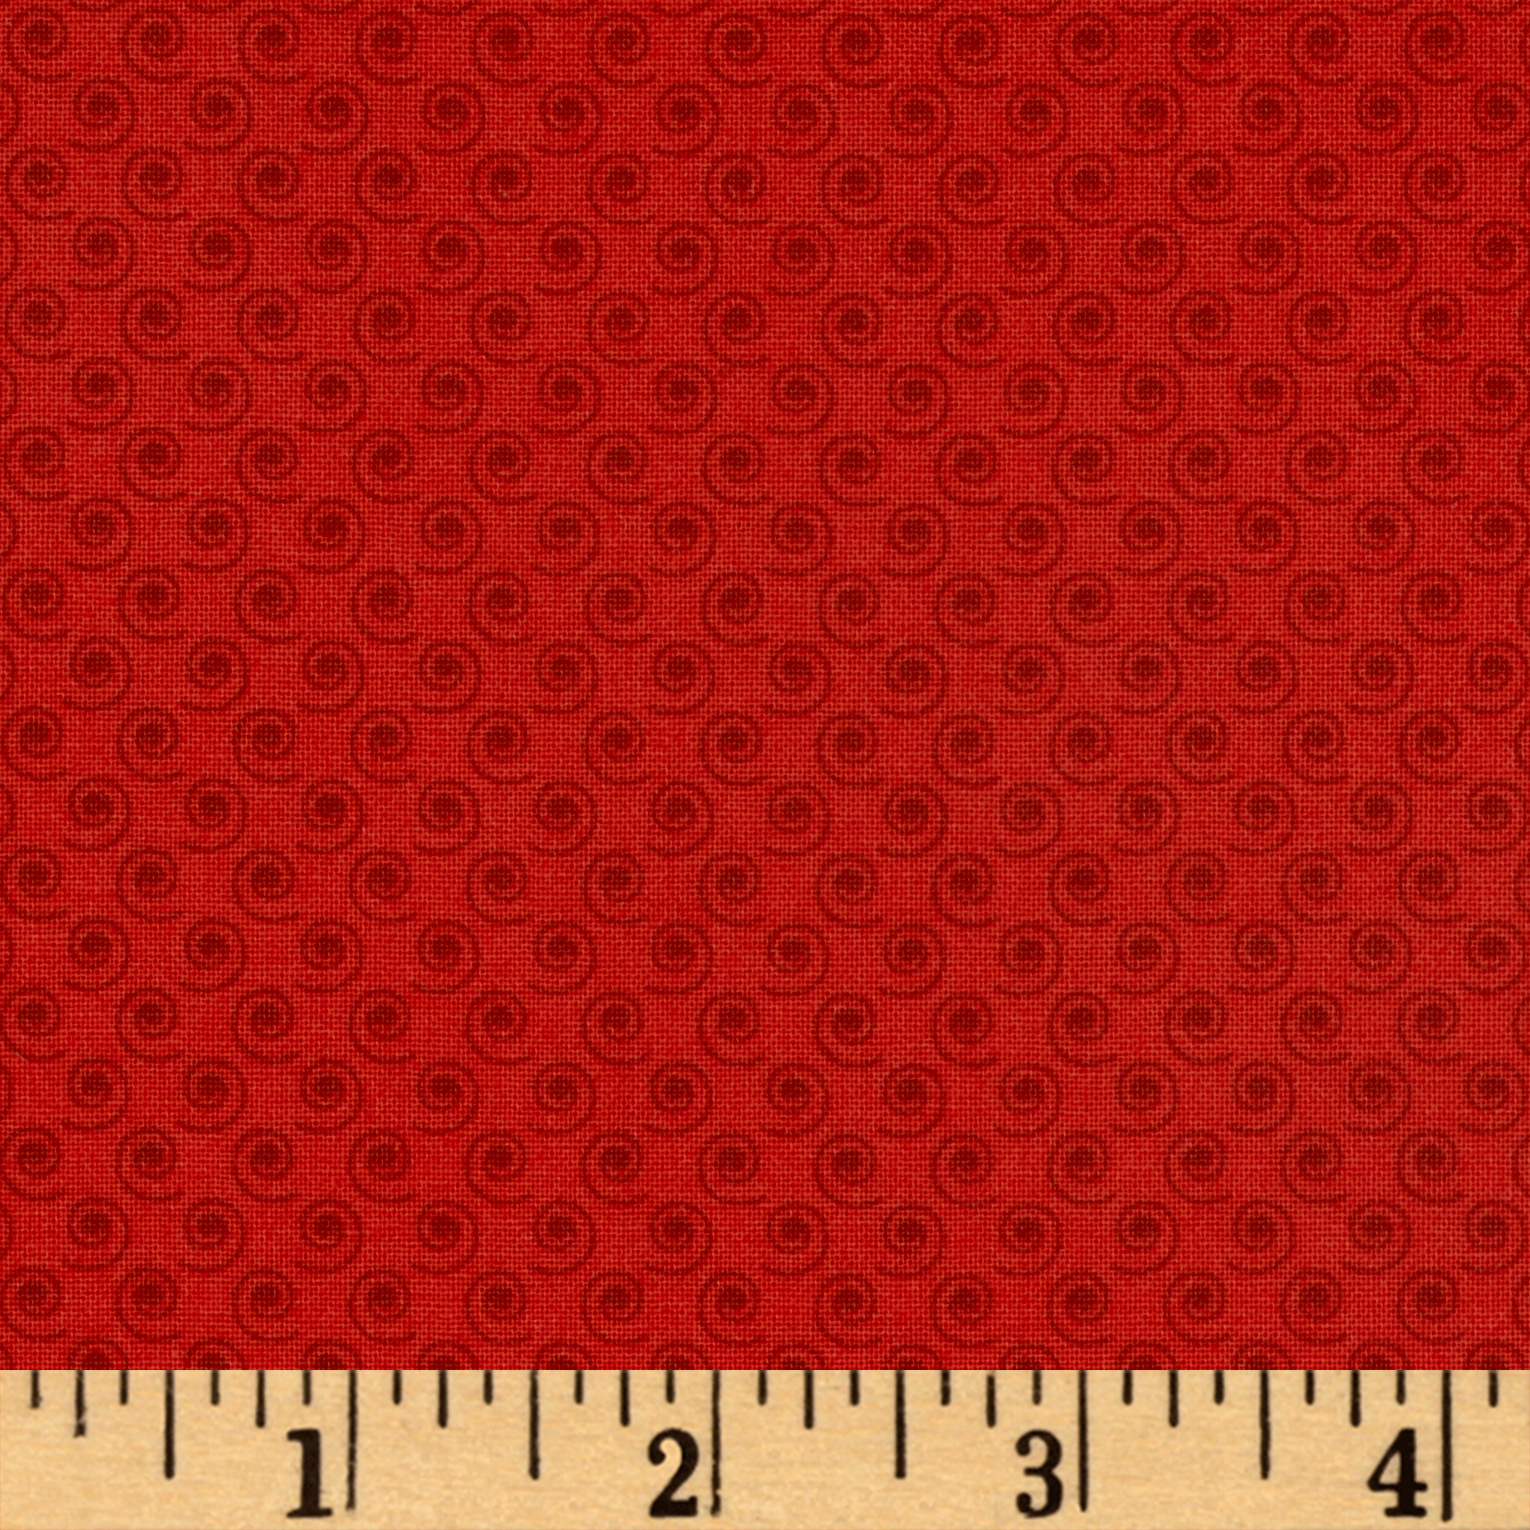 Quilt Camp Small Swirl Red Fabric by Henry Glass in USA